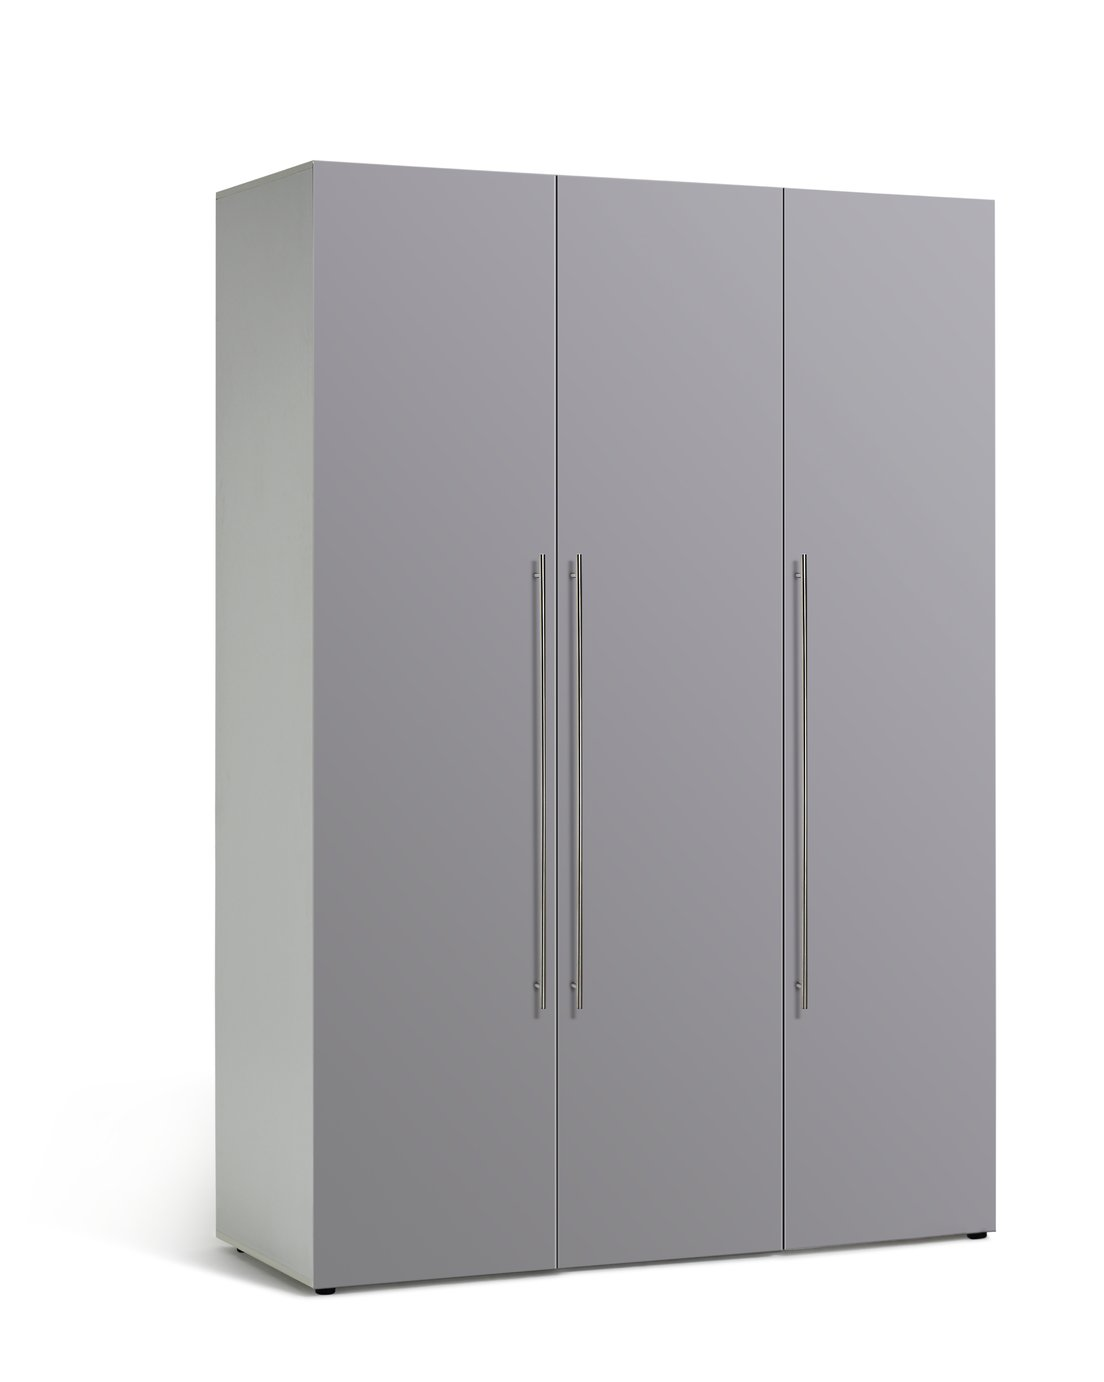 Argos Home Atlas 3 Door Tall Gloss Wardrobe